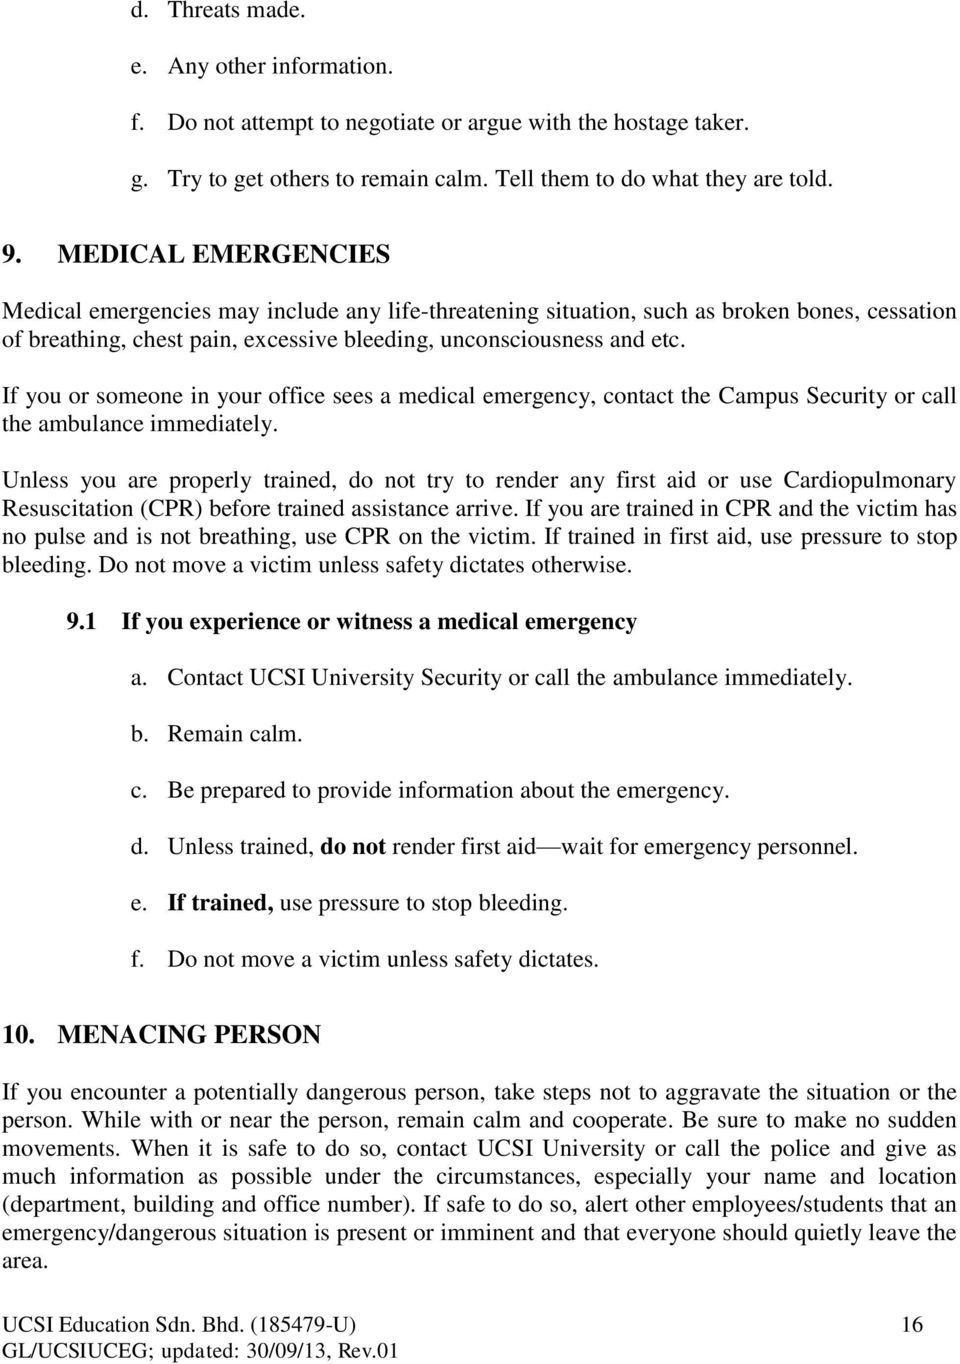 If you or someone in your office sees a medical emergency, contact the Campus Security or call the ambulance immediately.